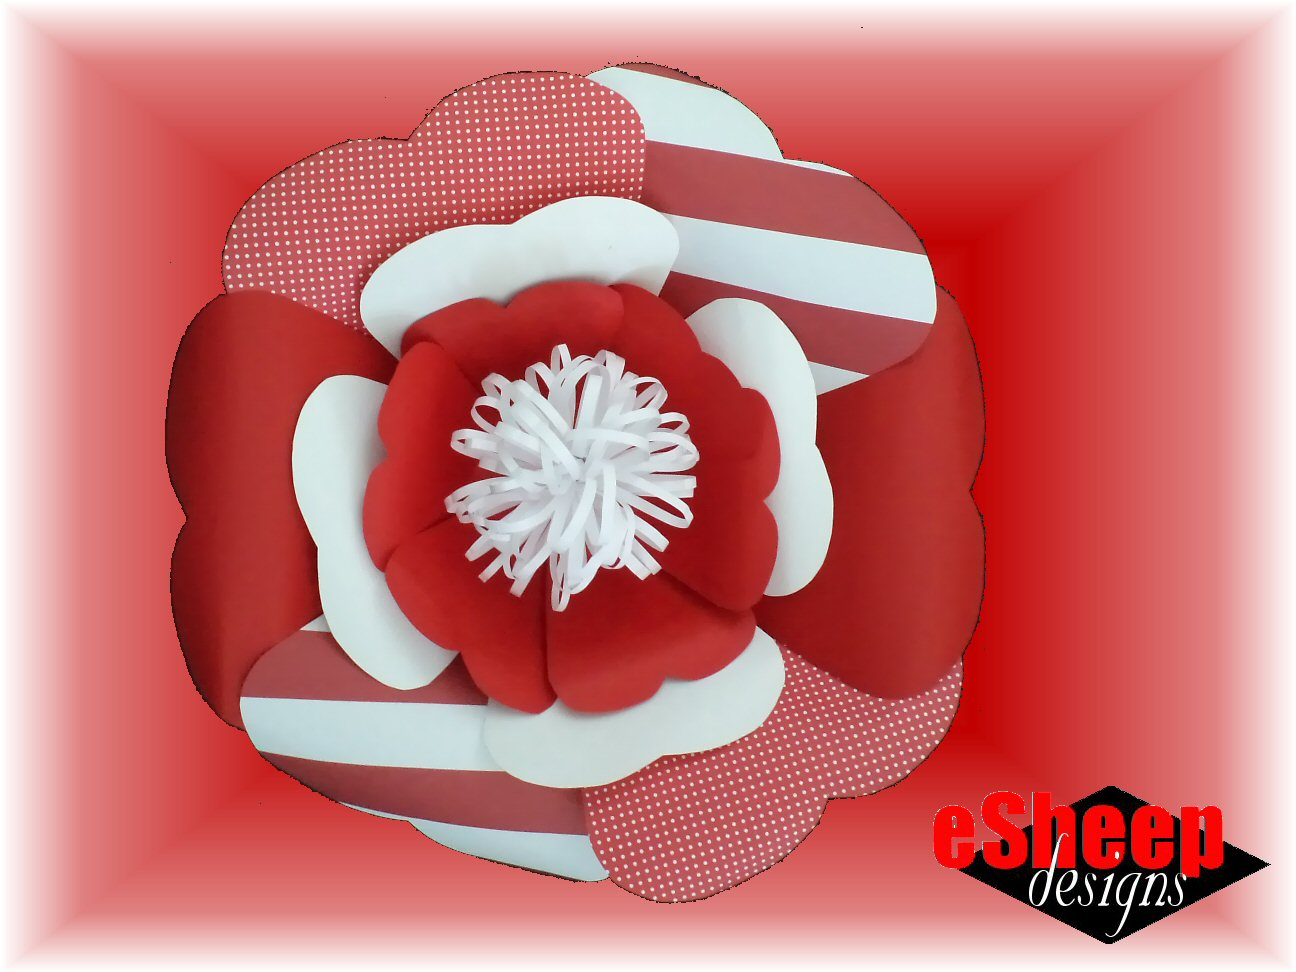 Scrapbook paper canada - A Giant Flower Made Out Of Scrapbooking Paper